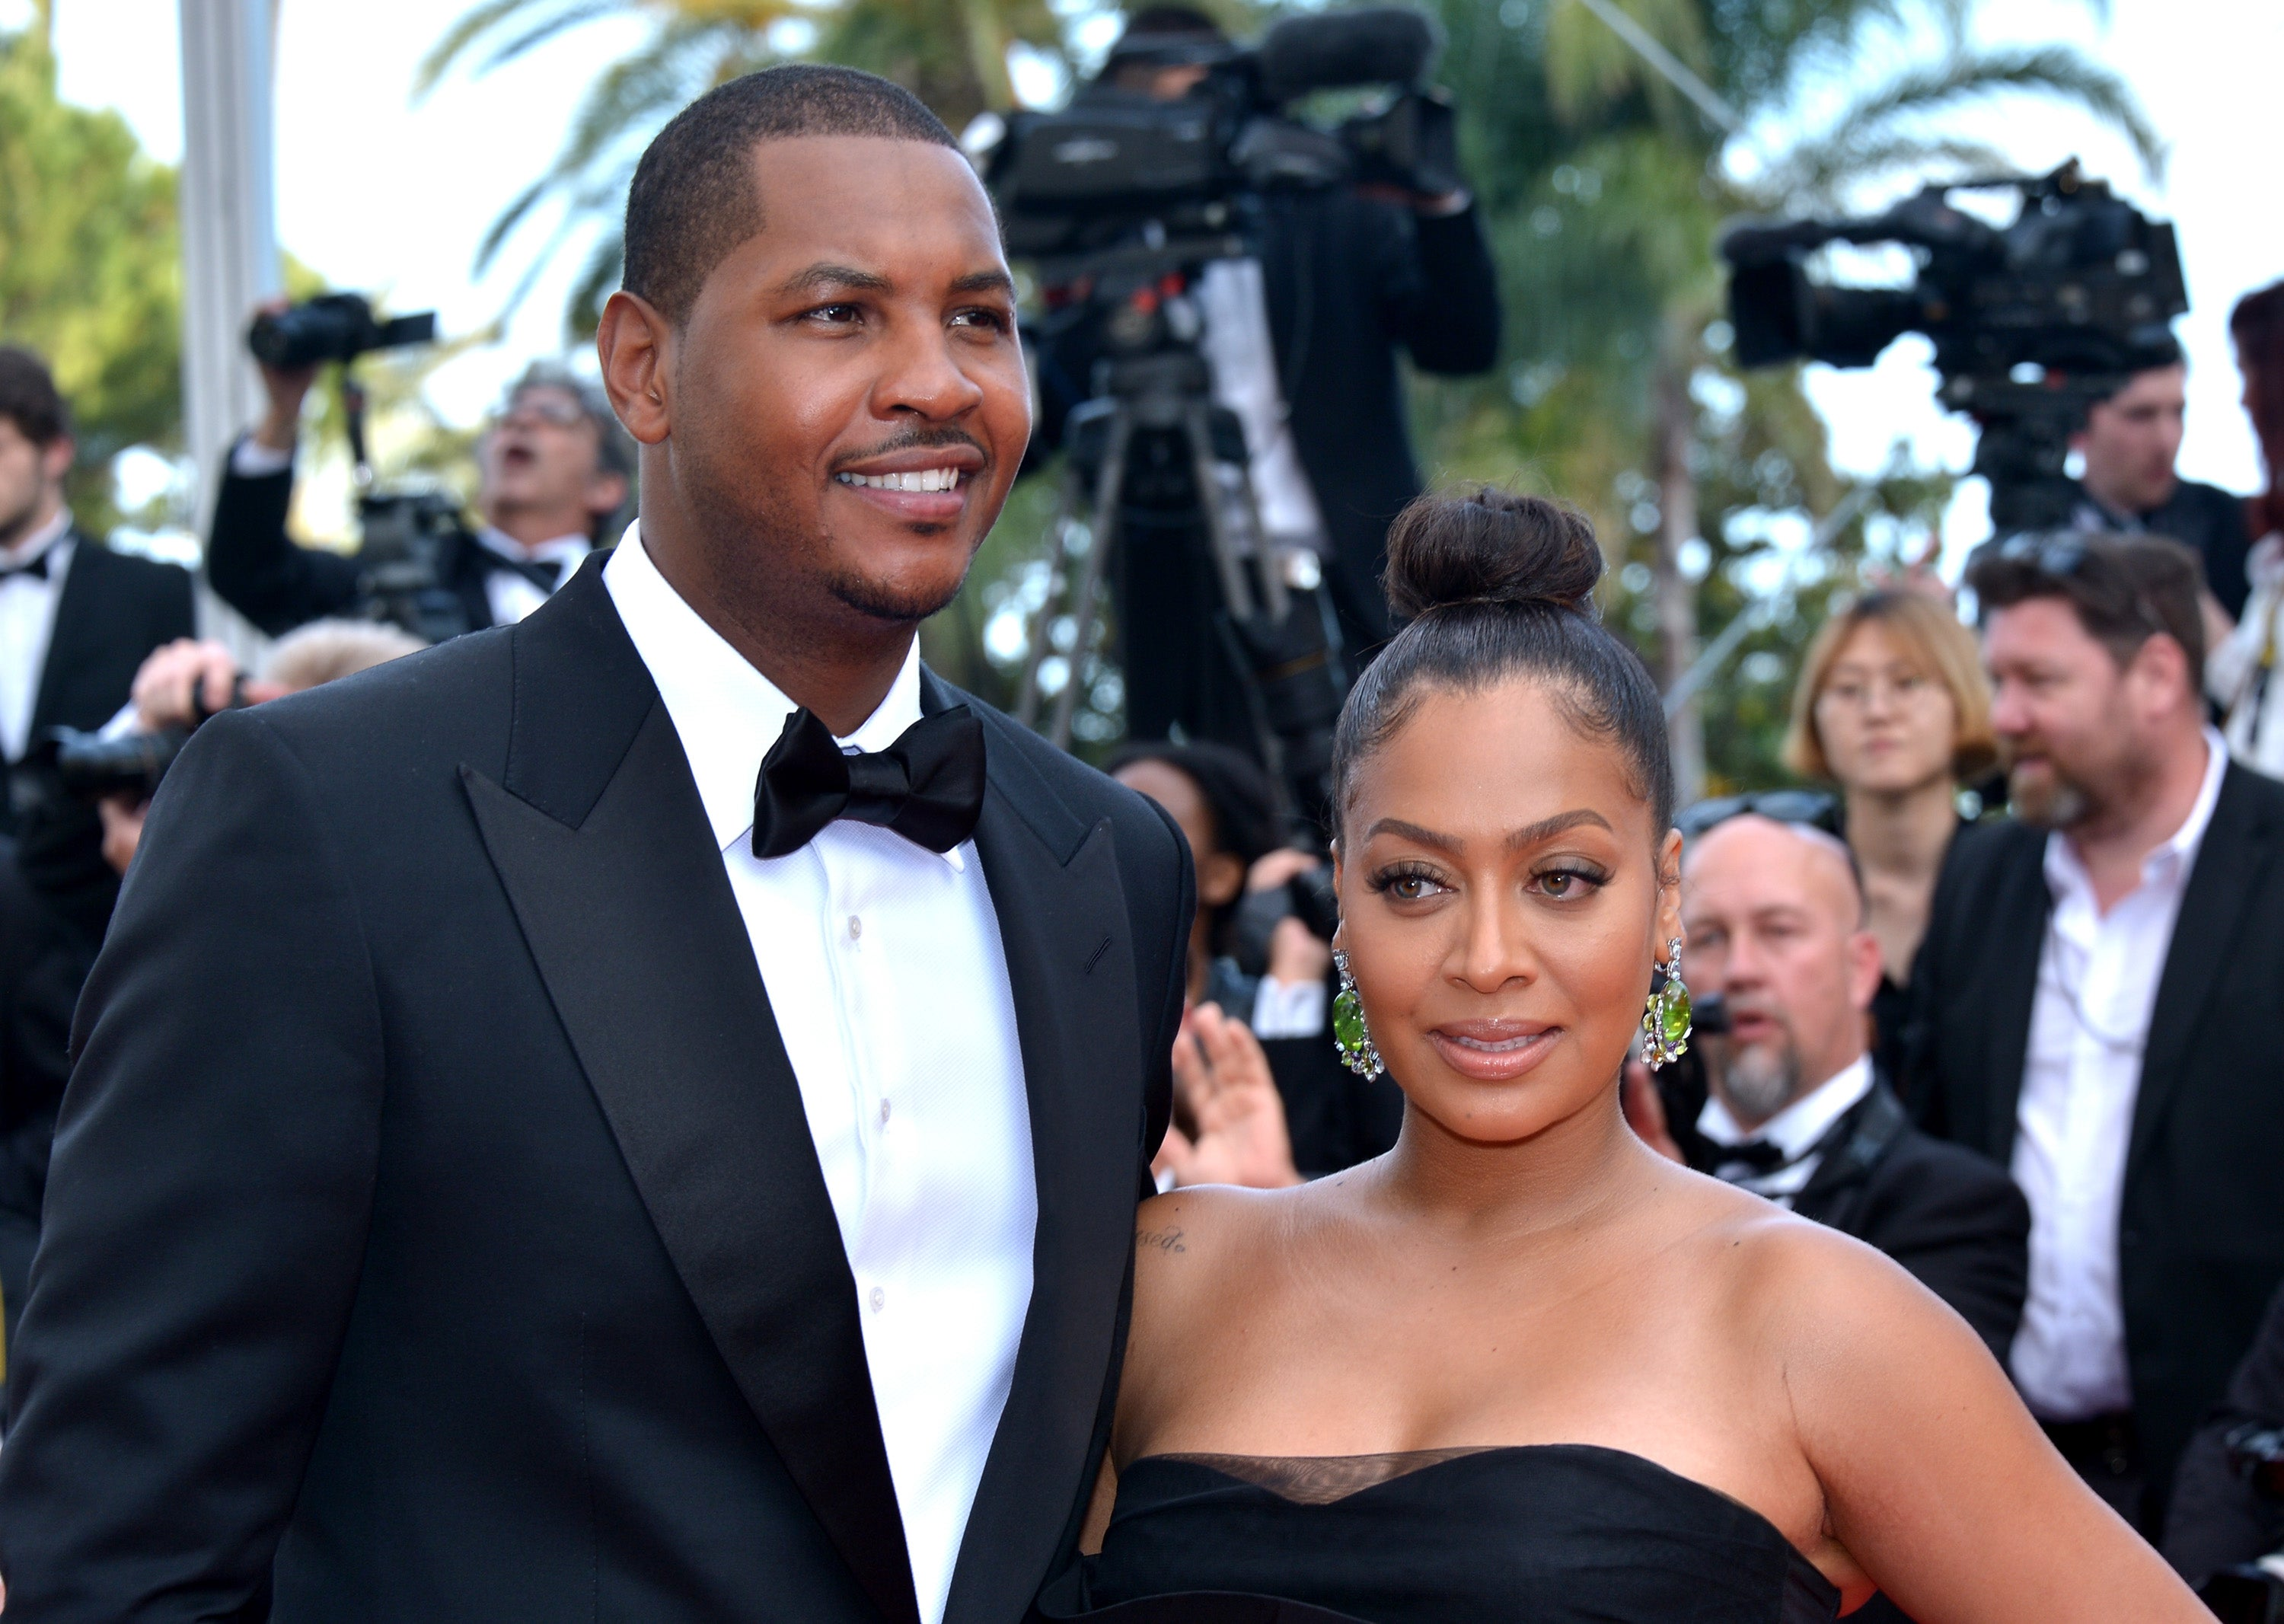 Professional basketball player Carmelo Anthony and television personality La La Anthony attend the